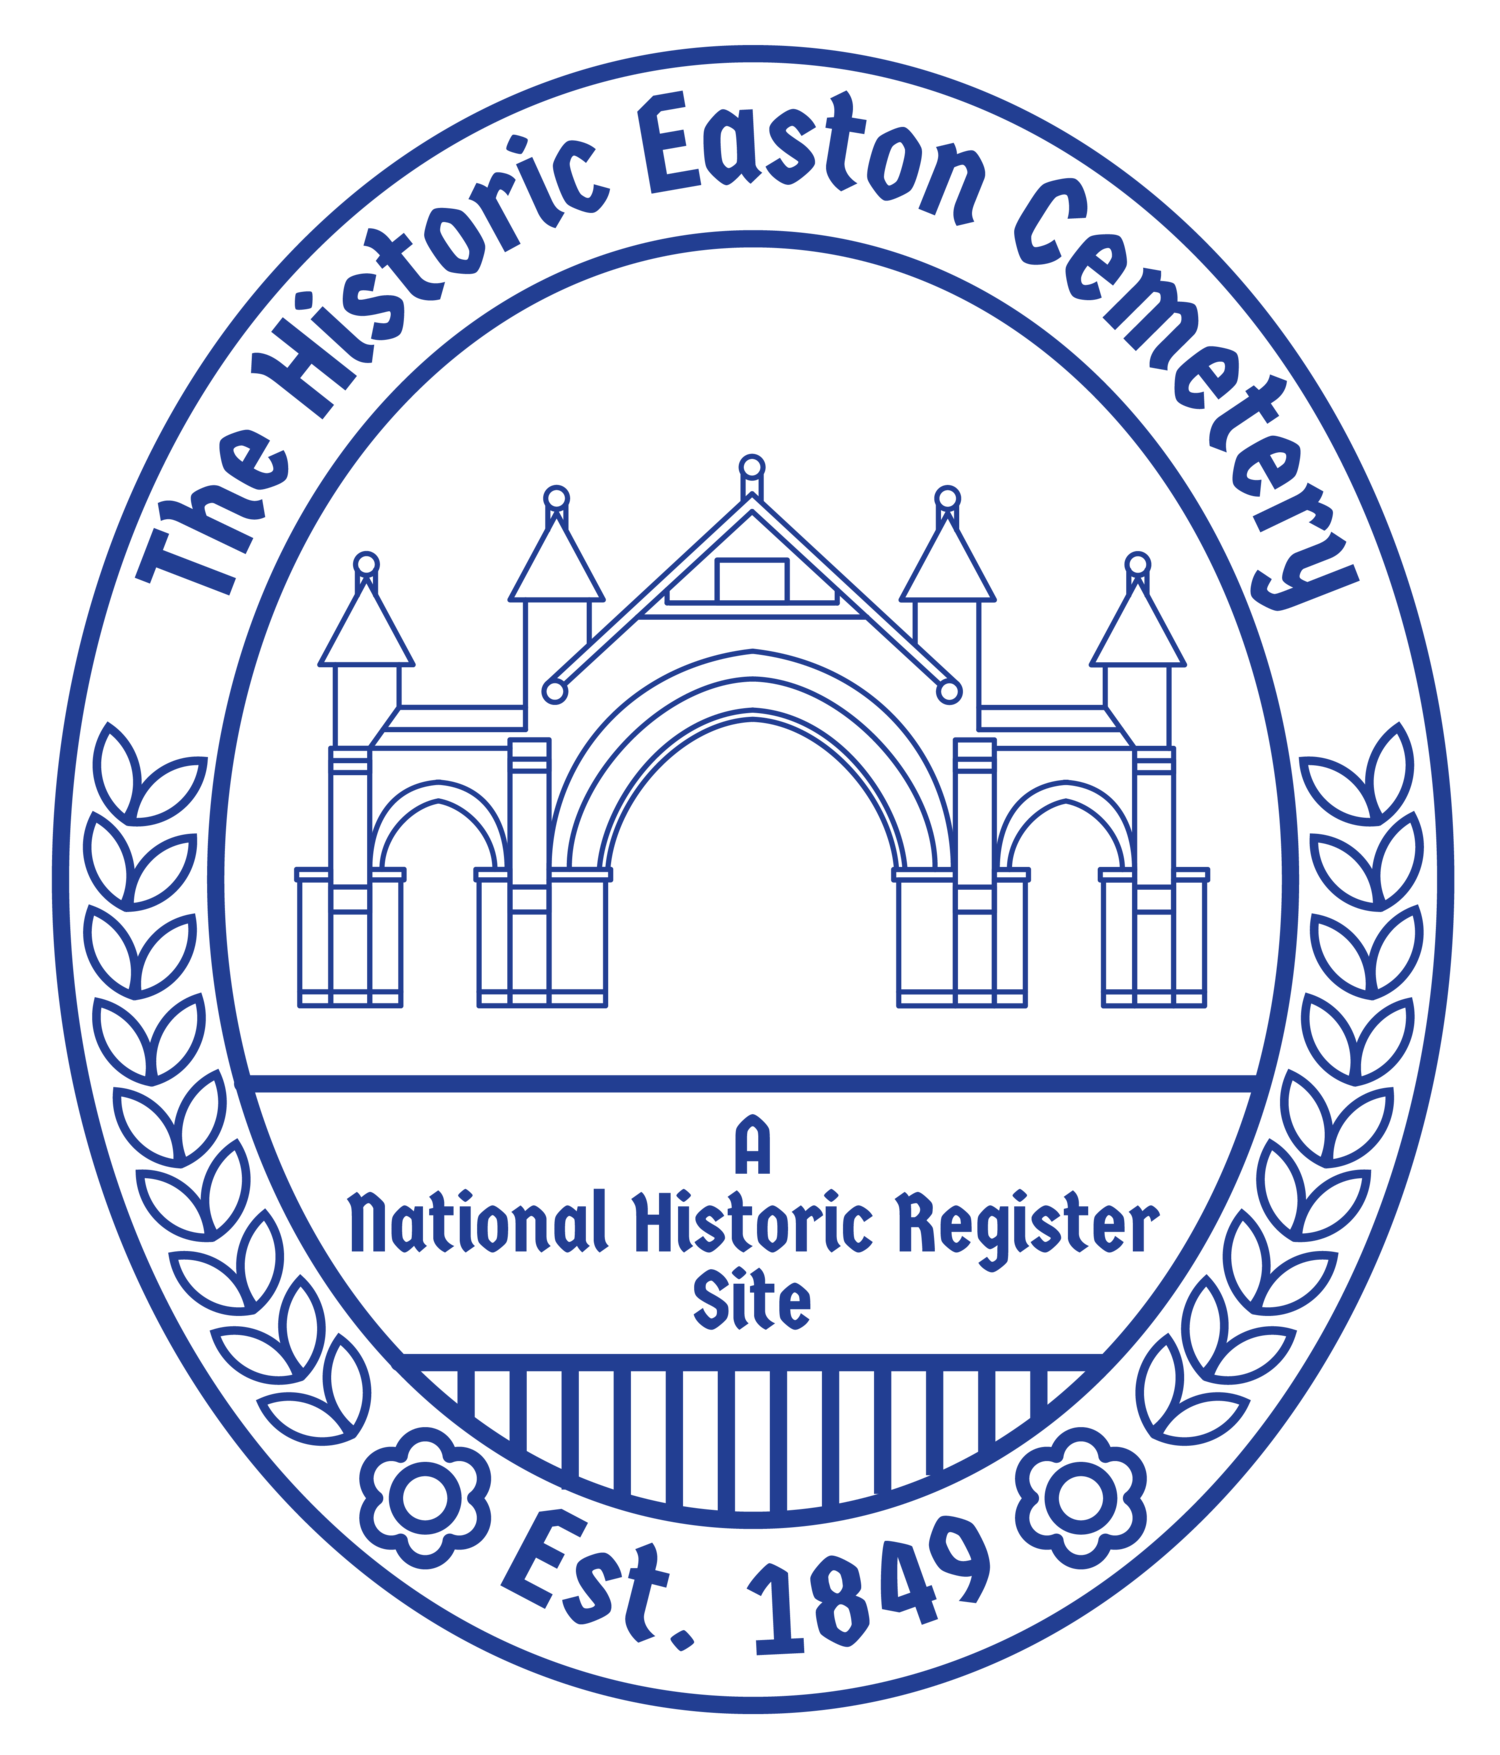 The Historic Easton Cemetery